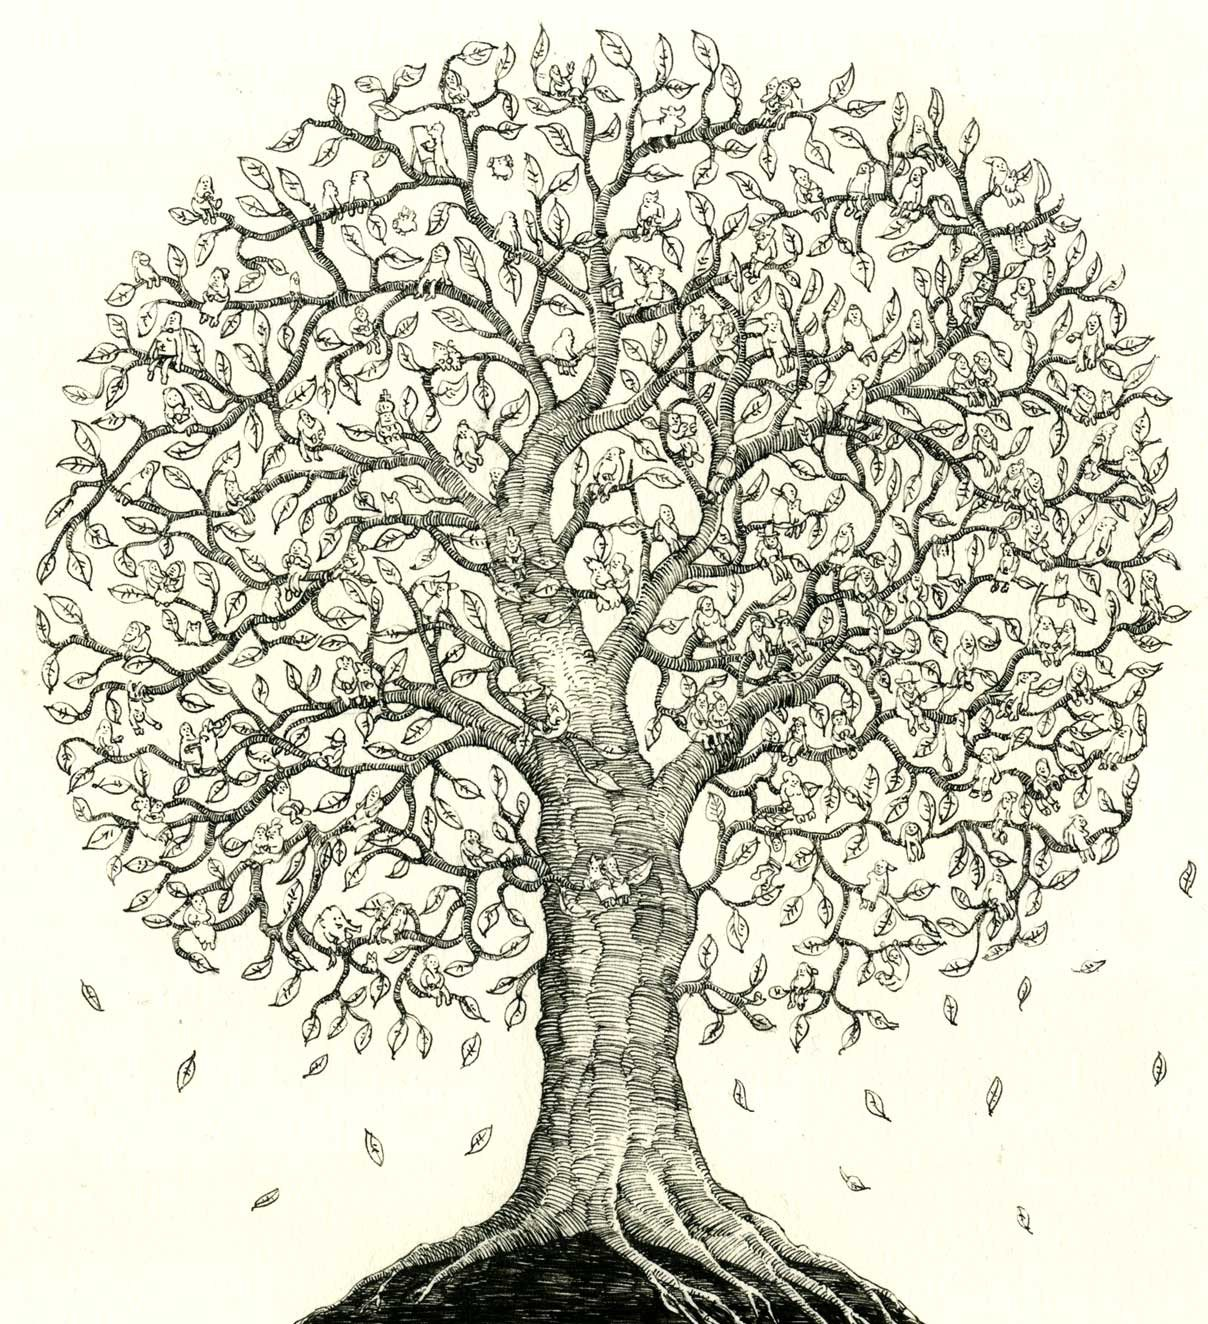 Family Tree Drawing at GetDrawings.com | Free for personal use ...